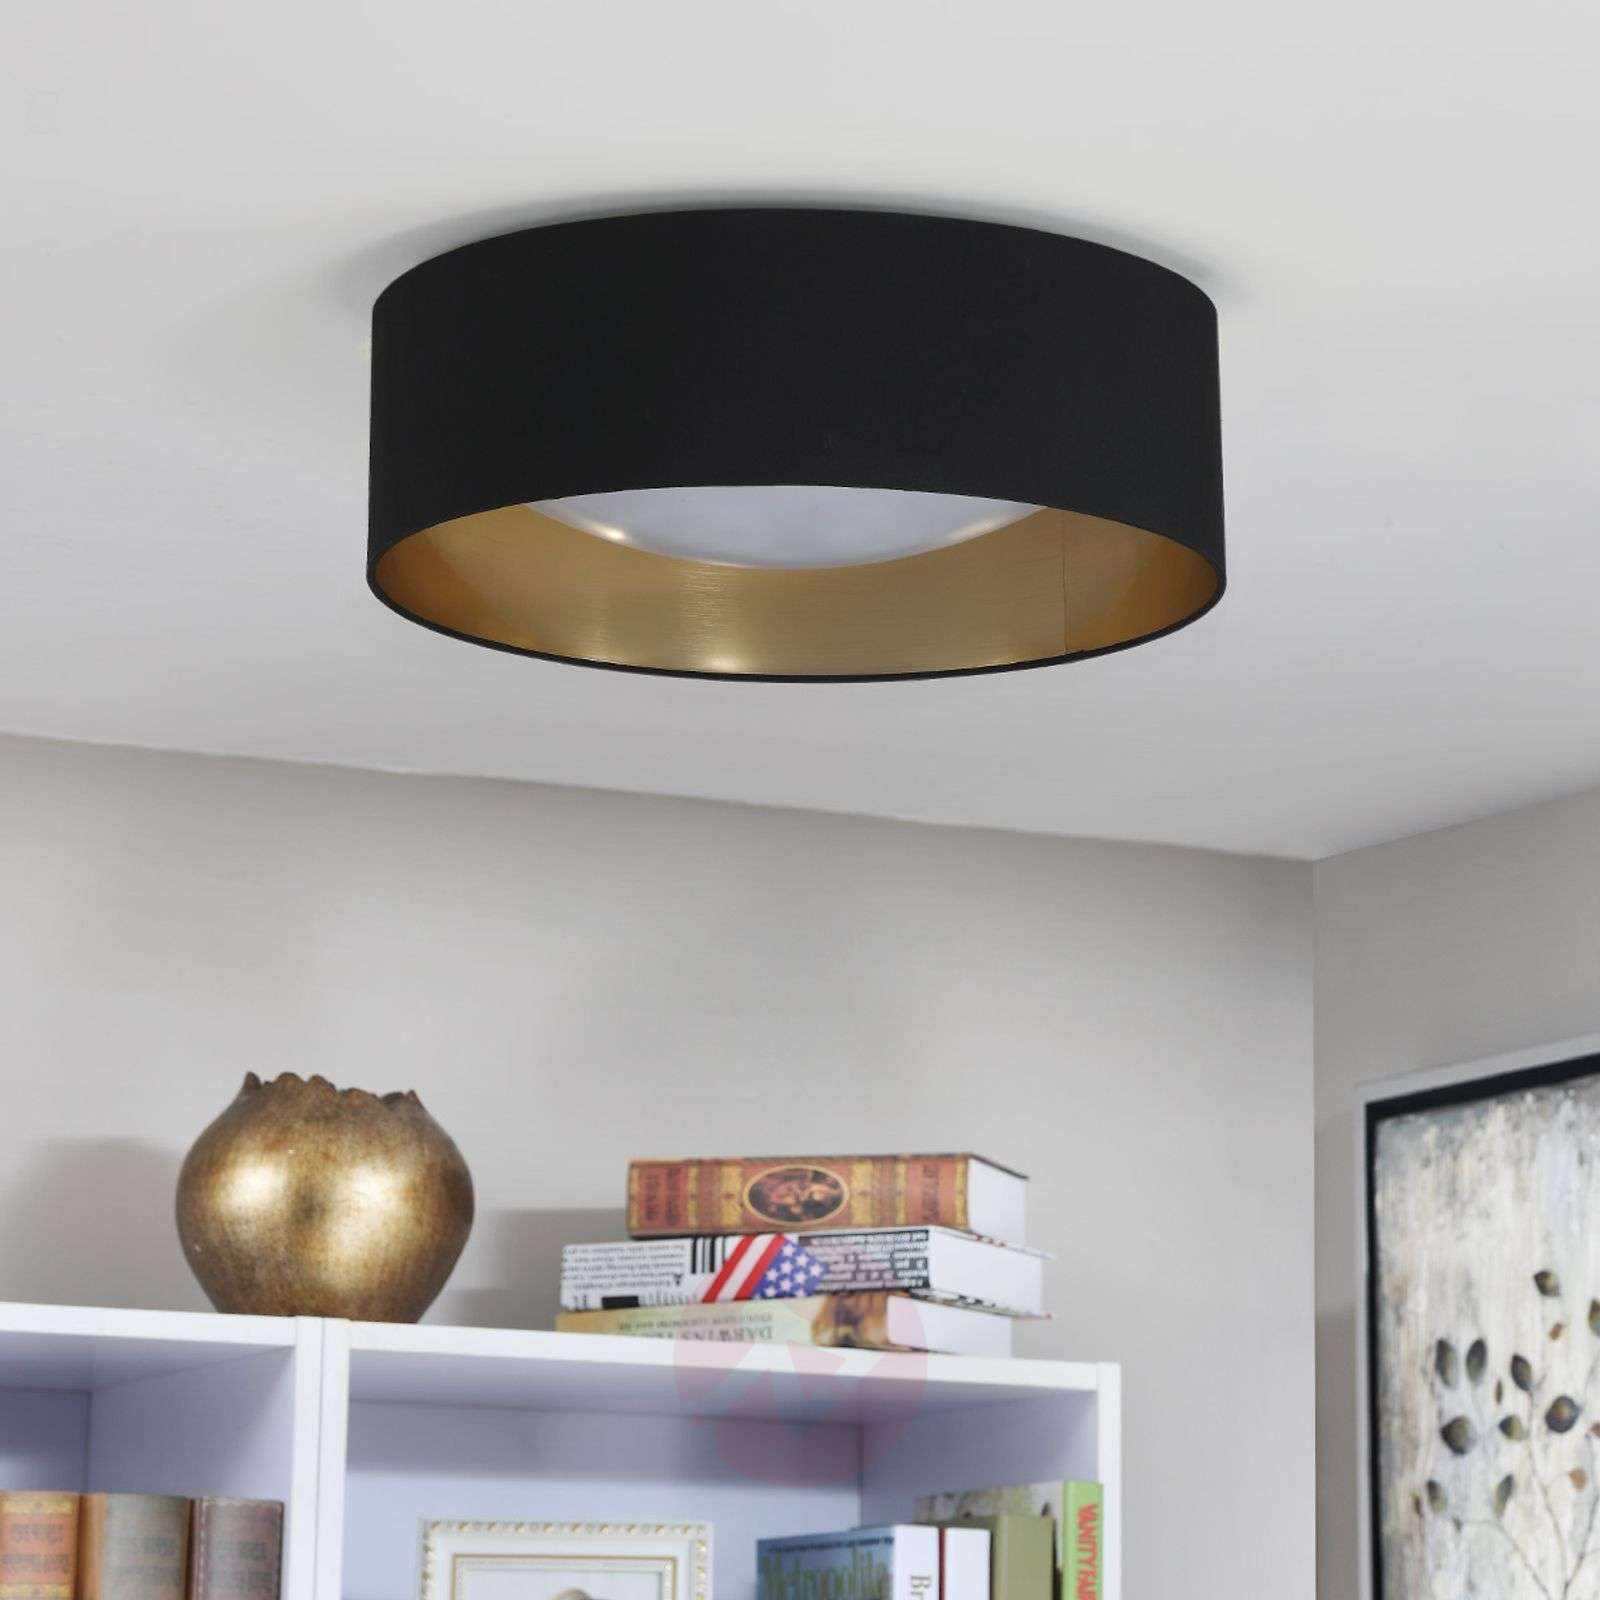 Fabric ceiling lamp Coleen in black, gold inside-9620640-01